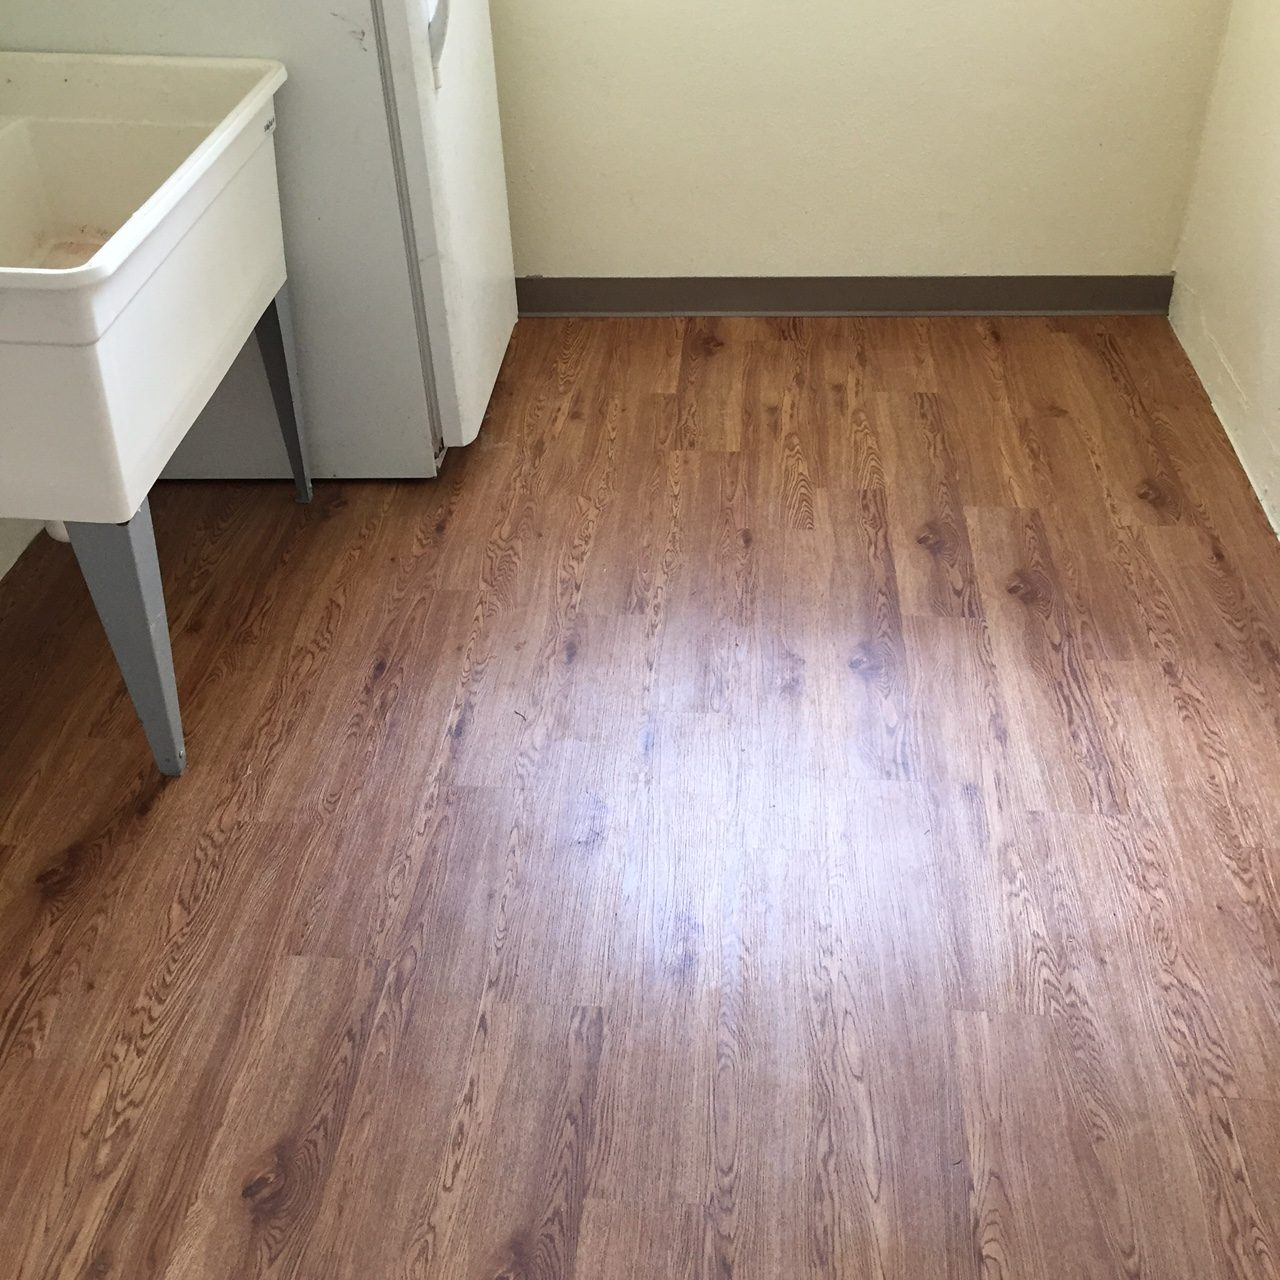 Laundry Room With New Laminate Flooring Installed